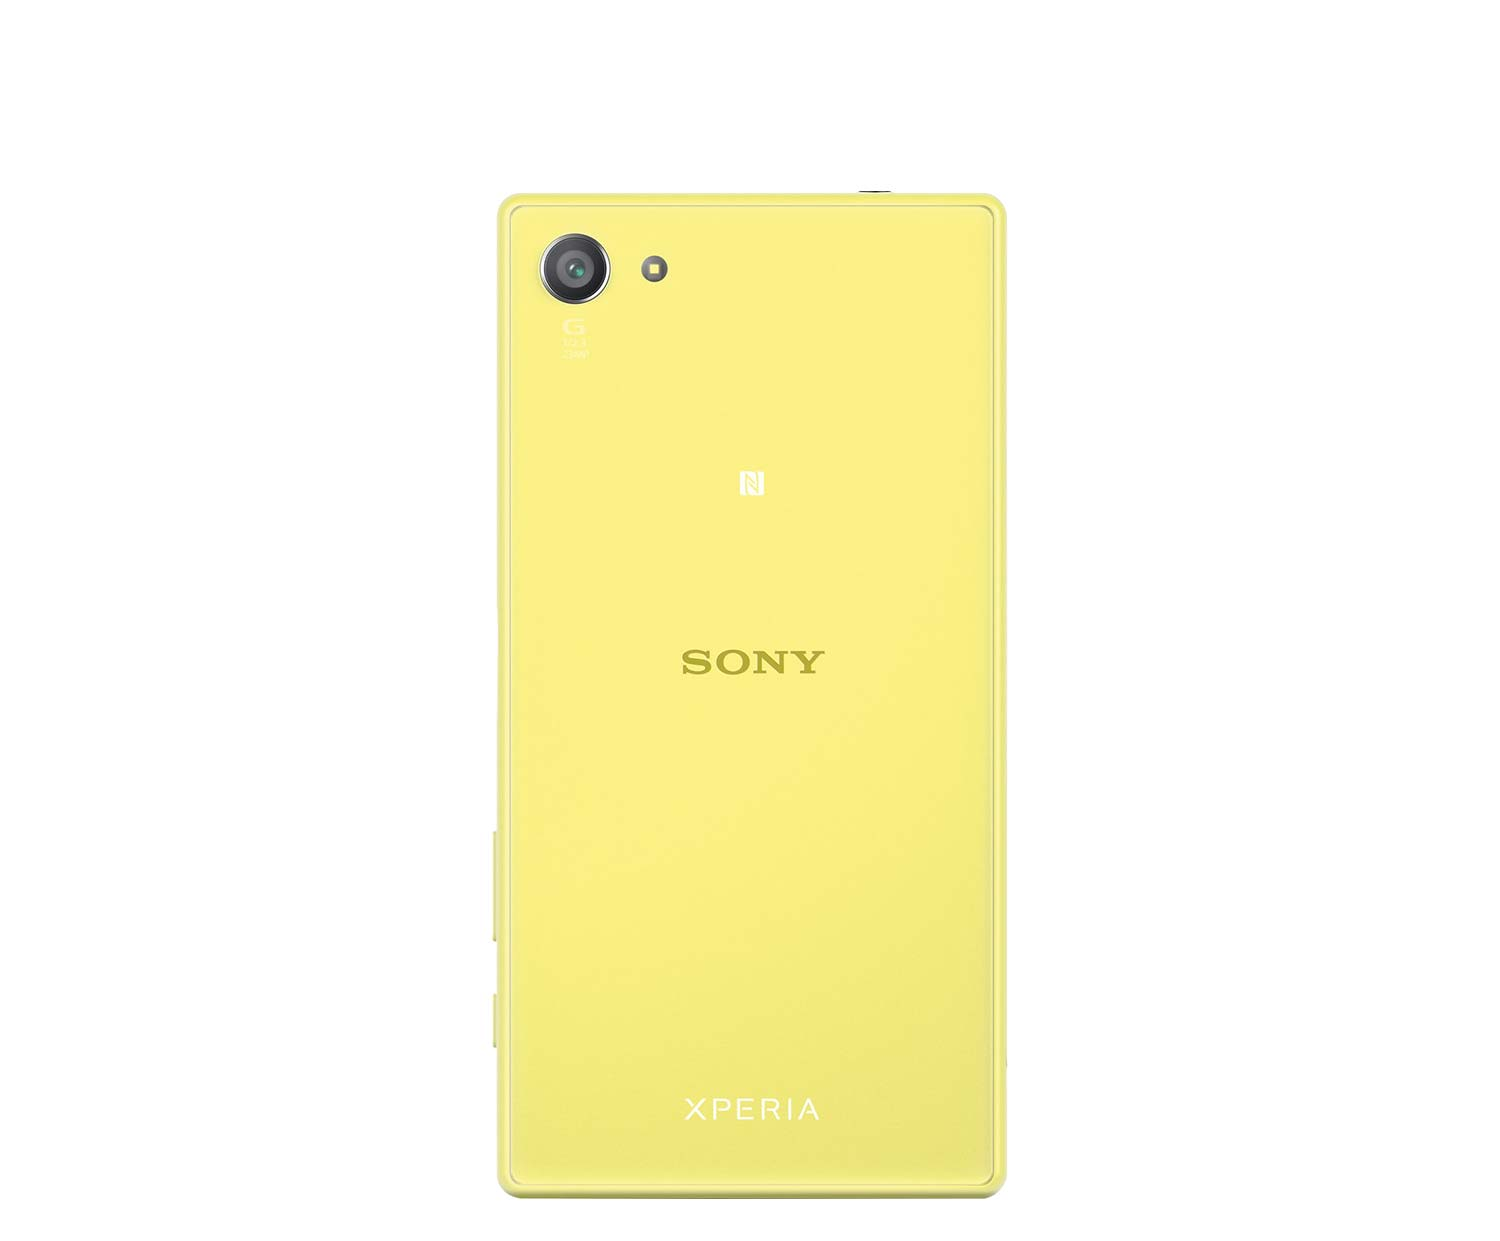 sony xperia z5 compact 32 gb gelb. Black Bedroom Furniture Sets. Home Design Ideas